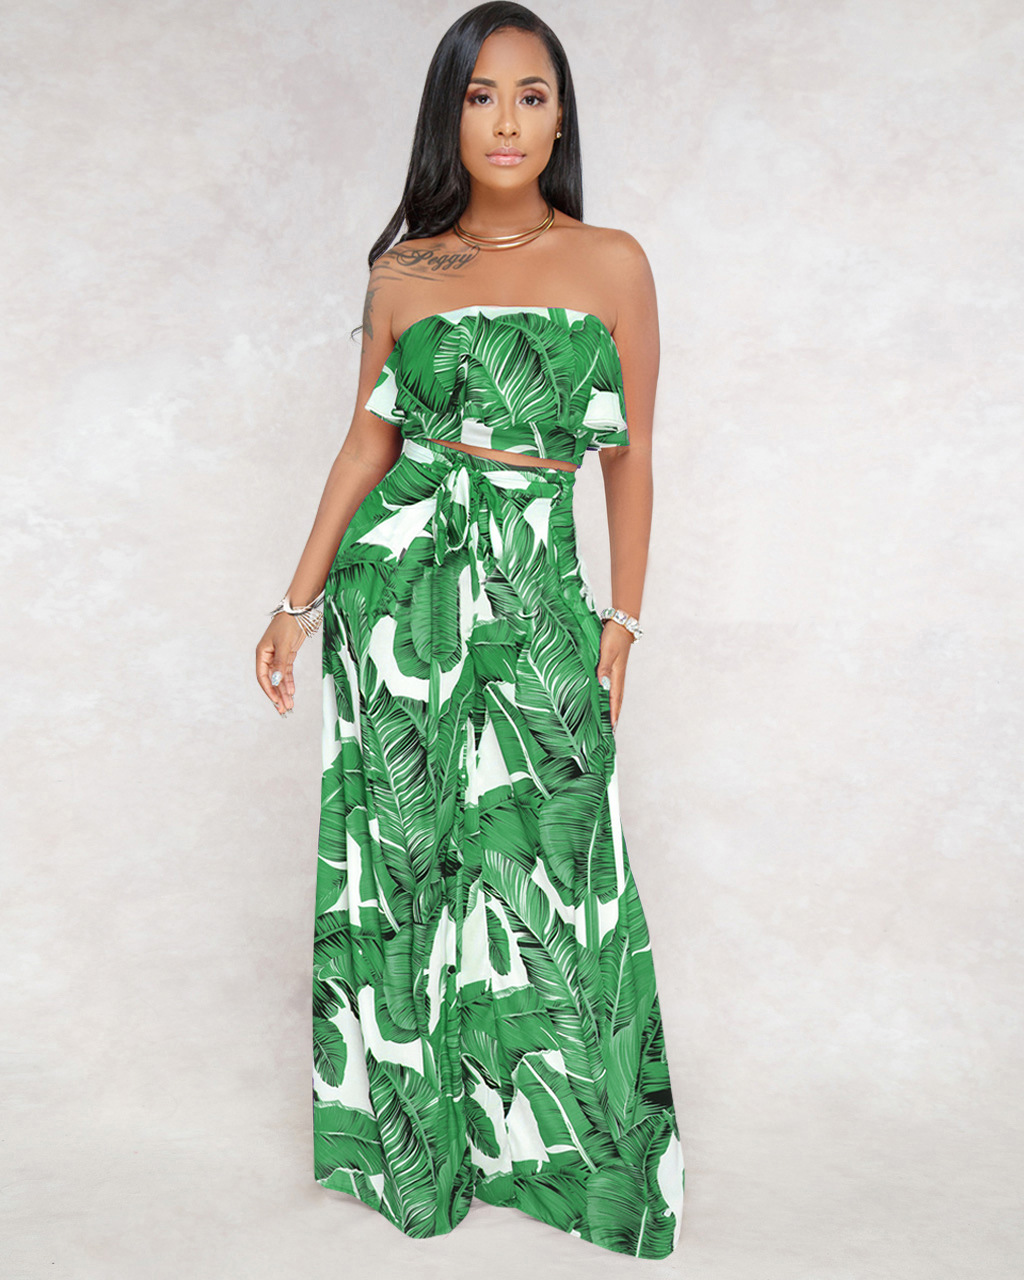 1757c1062dbc Strapless Backless Sexy Jumpsuit Clubwear Women Summer Palm Leaf Print  Romper Women Two Pieces Crop Boho Long Playsuit Overalls